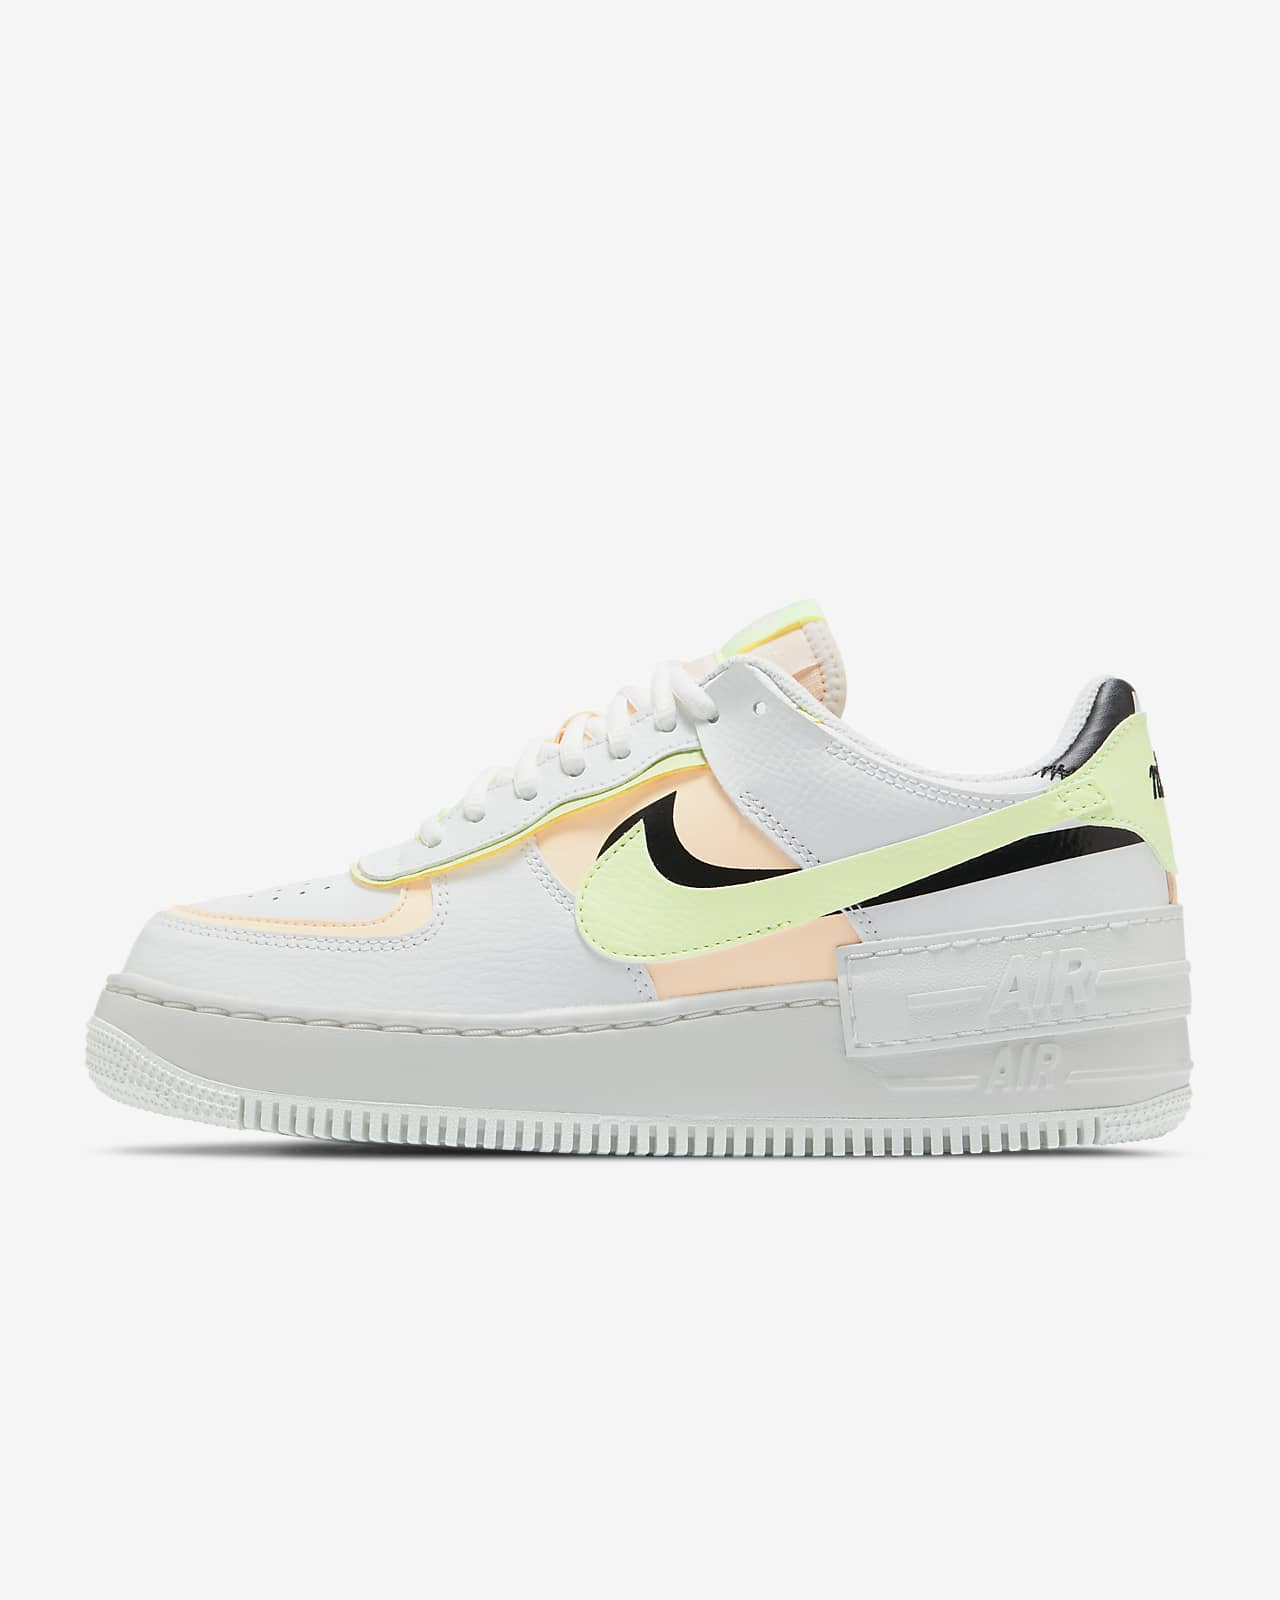 Nike Air Force 1 Shadow Women S Shoe Nike Sg The nike air force 1 low black yellow is now arriving. nike air force 1 shadow women s shoe